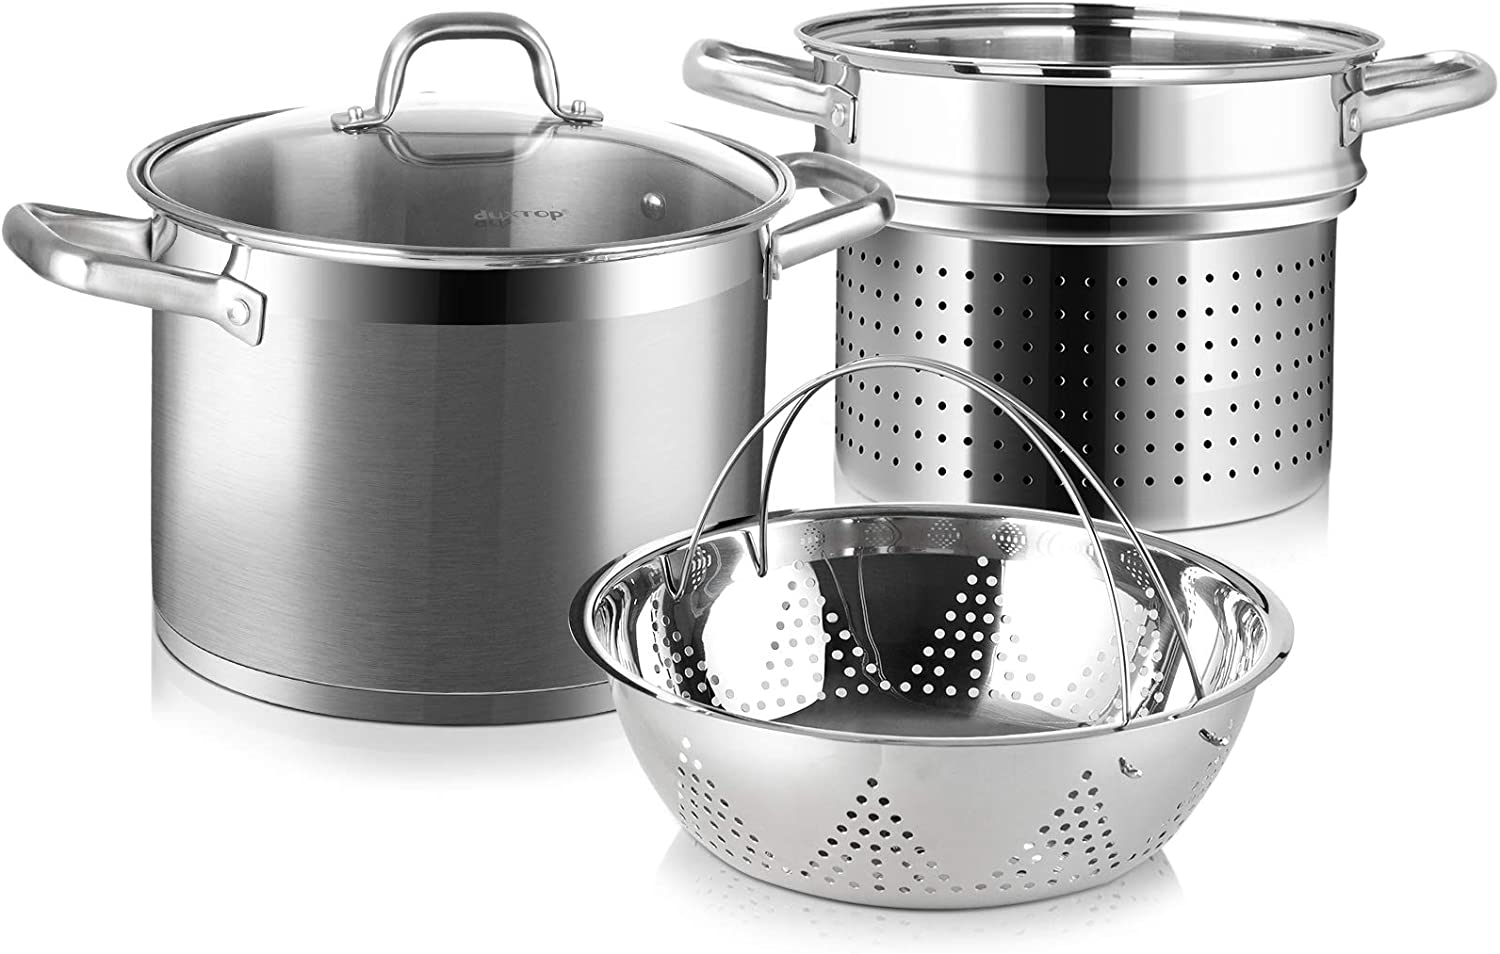 Duxtop Professional Stainless Steel Pasta Pot with Strainer Insert, 4PC Multipots Includes Pasta Pot & Steamer Pot, 8.6Qt Induction Stock Pot with Glass Lid, Impact-Bonded Technology